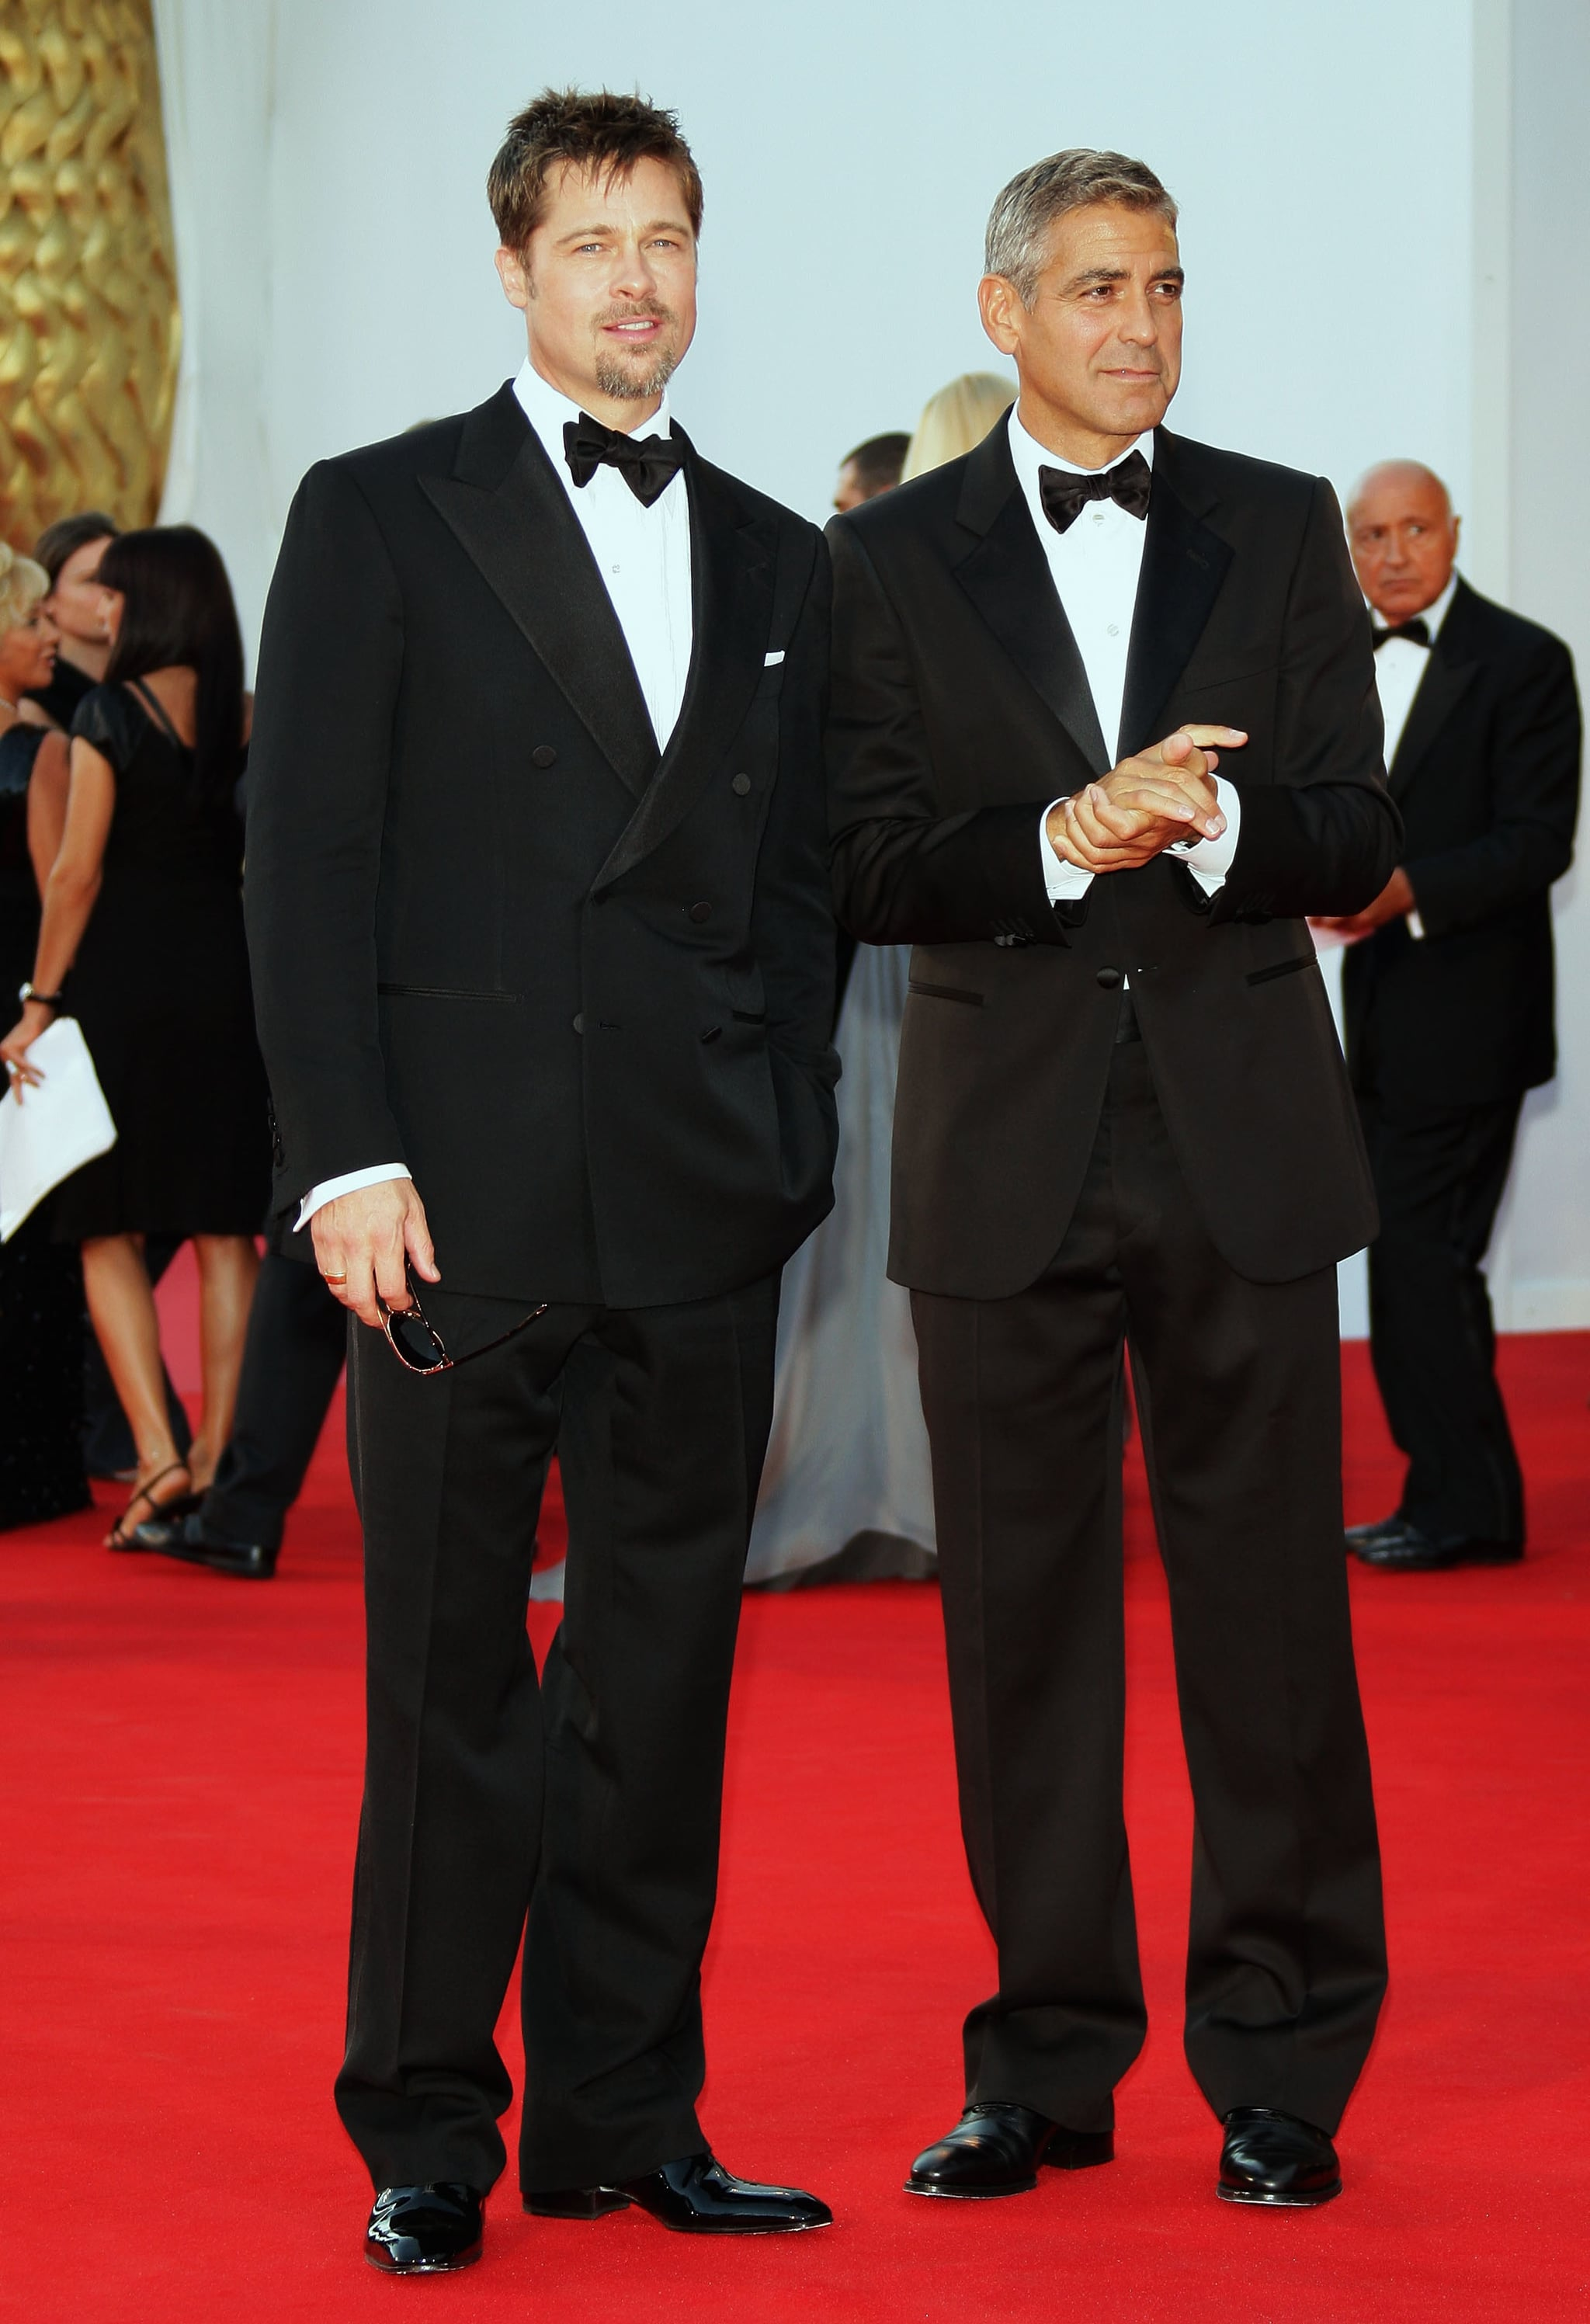 George Clooney at the Cannes Film Festival Premiere of Burn After Reading